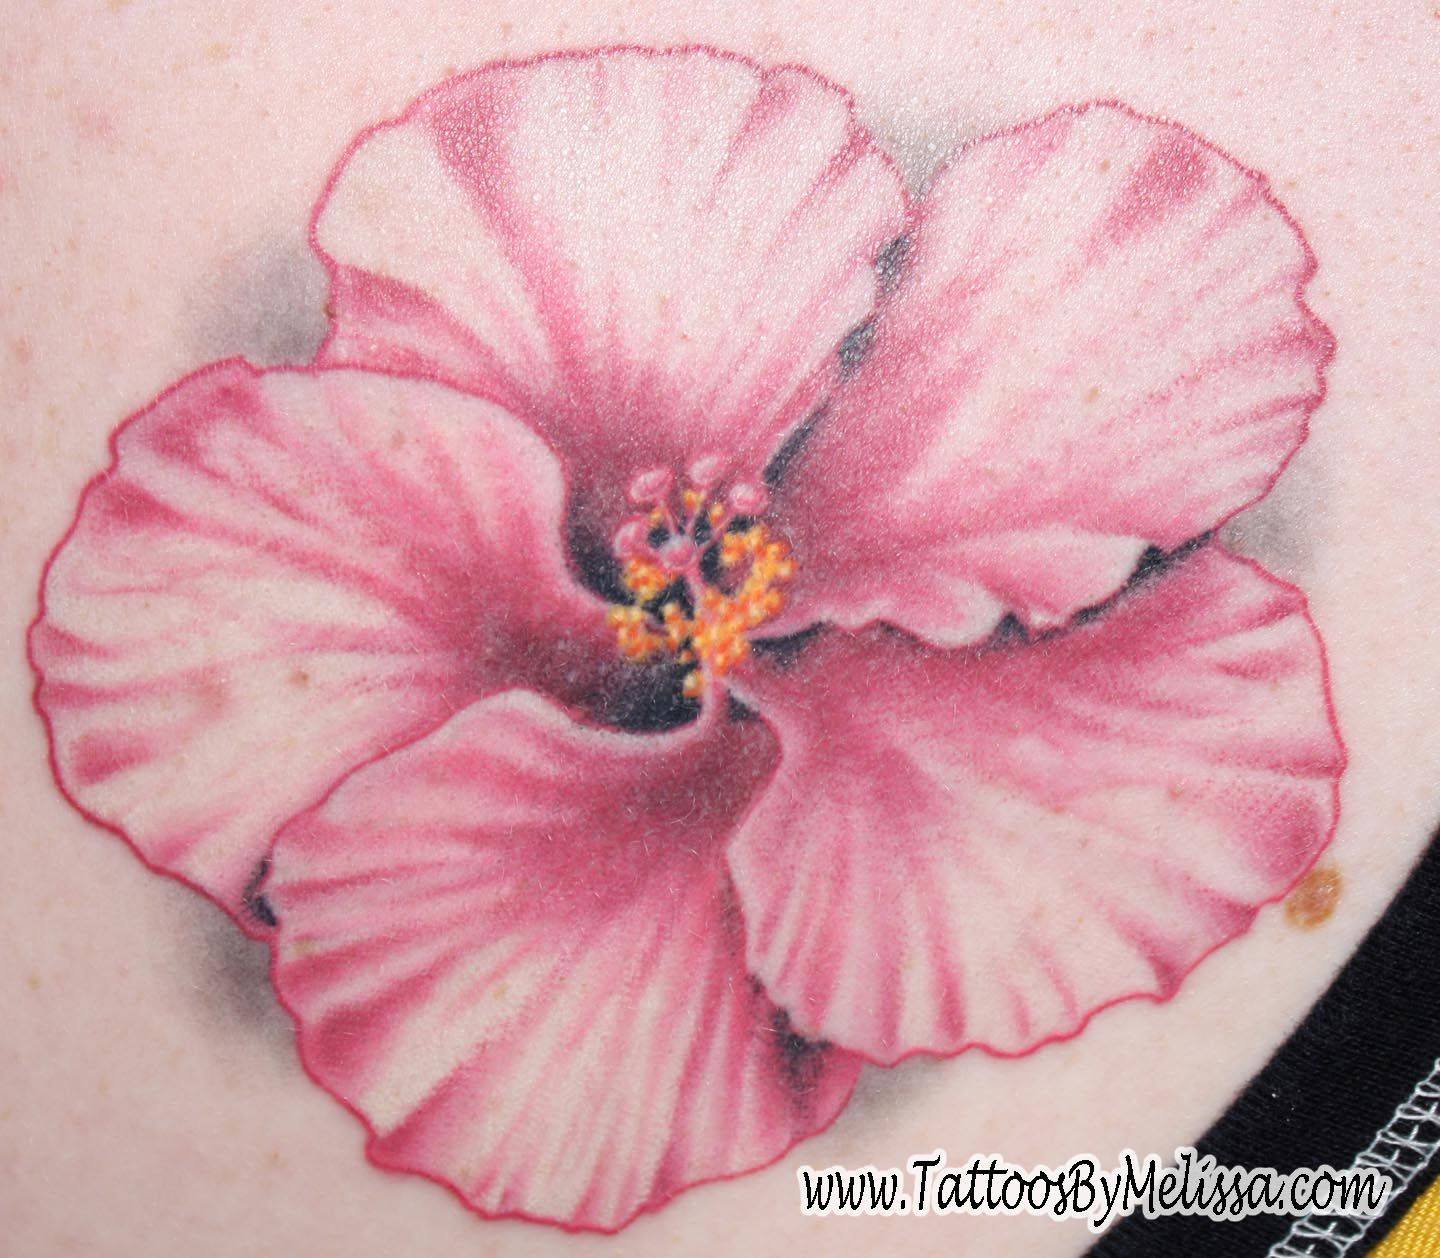 Realistic pink hibiscus flower tattoo artist melissa capo www realistic pink hibiscus flower tattoo artist melissa capo tattoosbymelissa izmirmasajfo